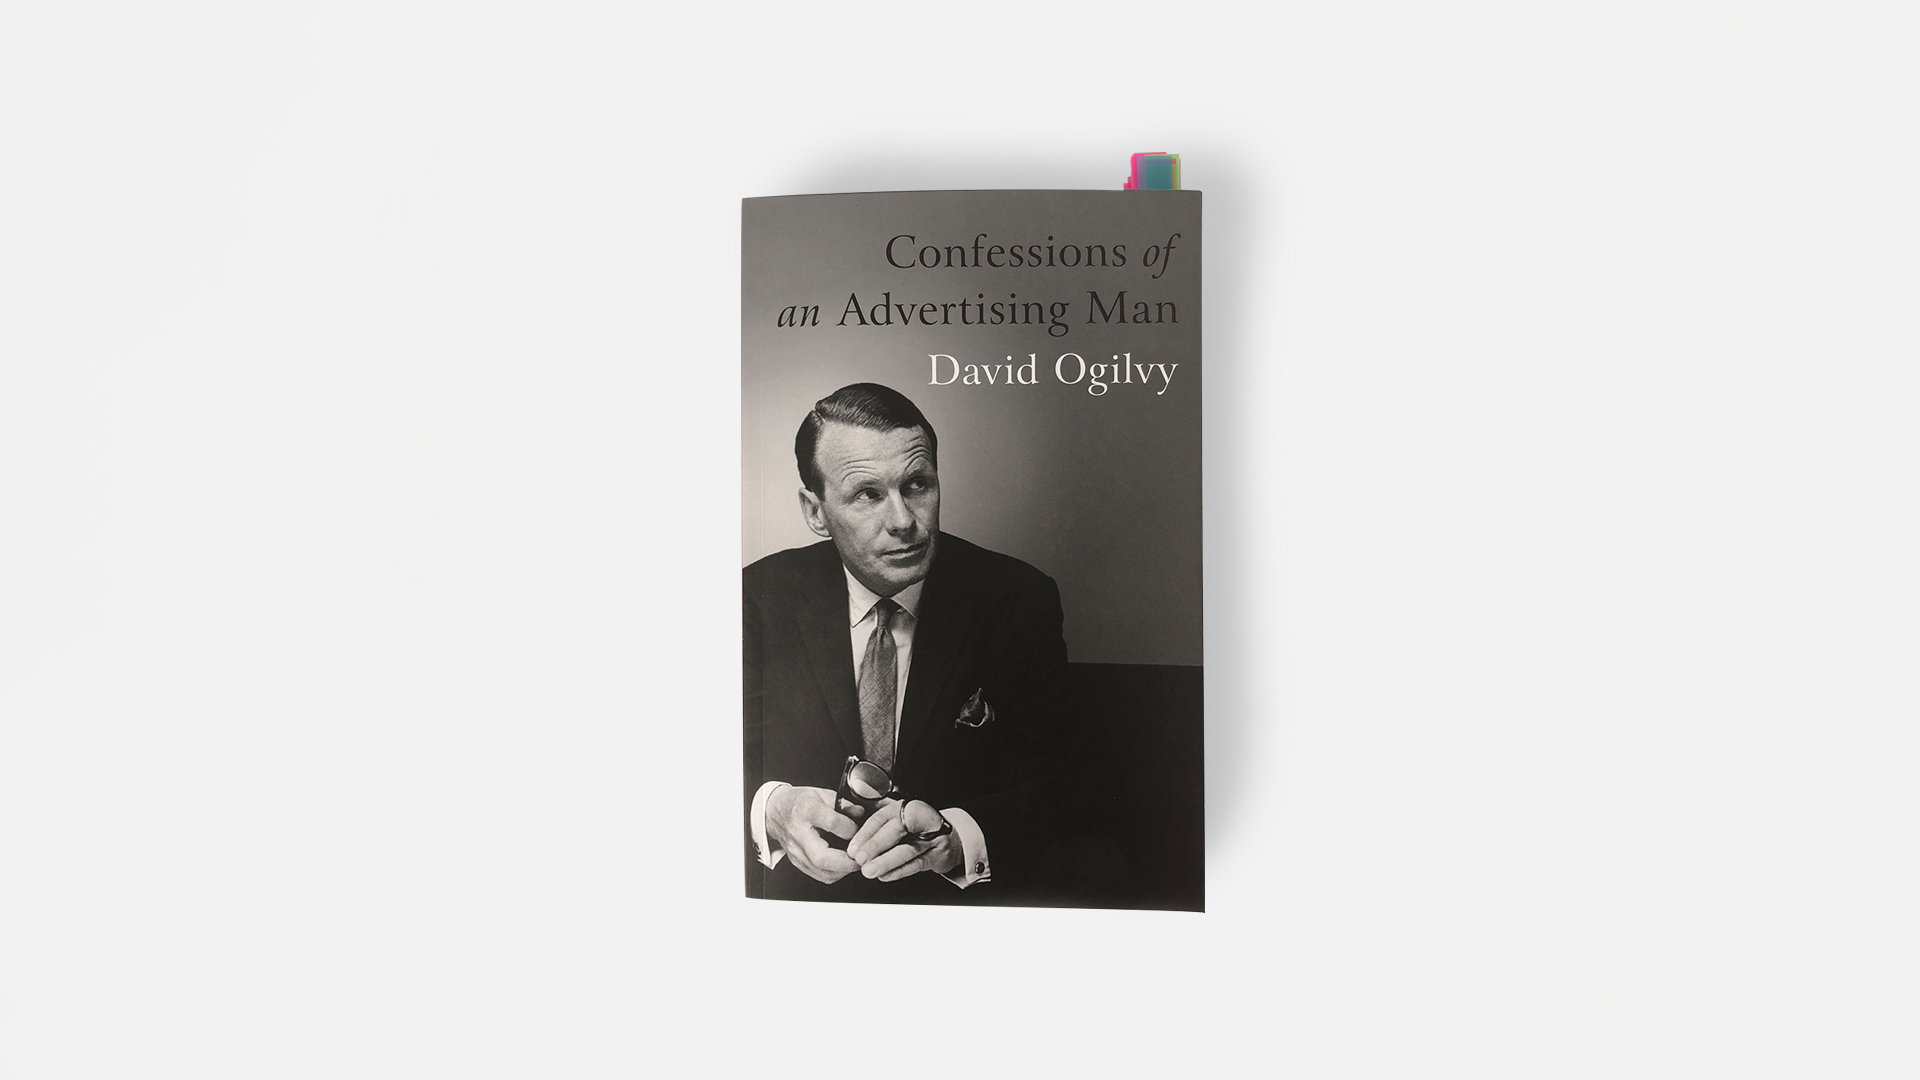 Photo of the Confessions of an Advertising Man book cover